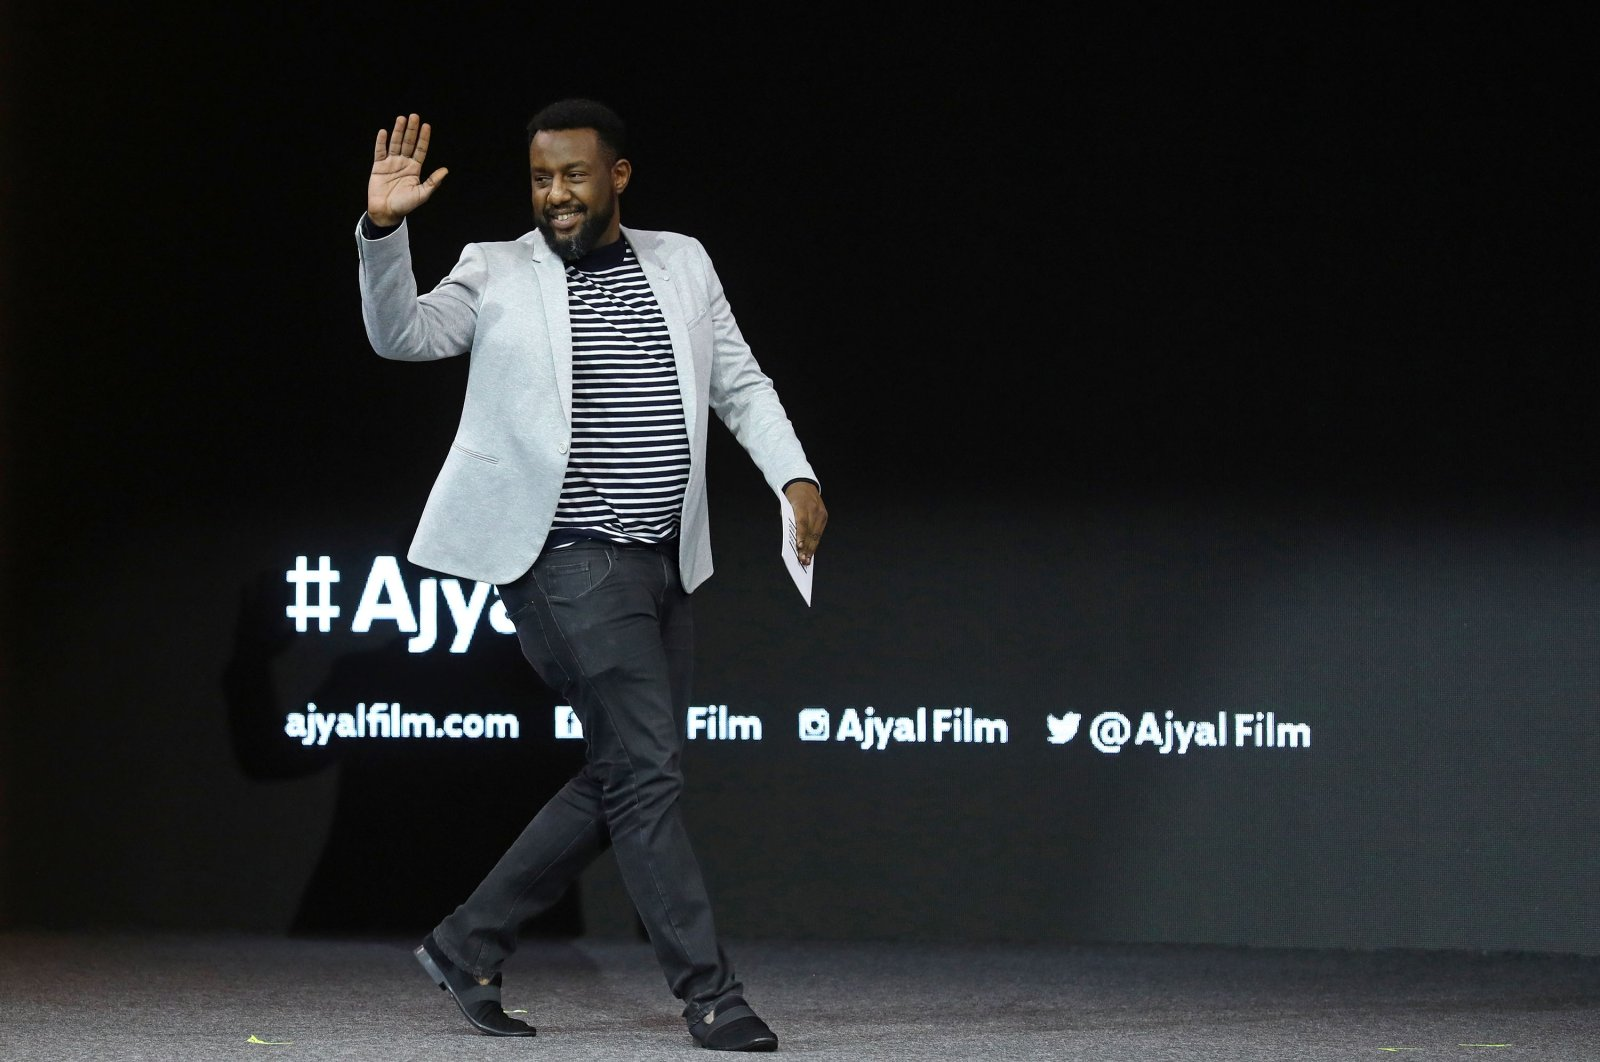 Director of 'You Will Die at Twenty' Amjad Abu Alala on stage during the Award Ceremony on the final night of the Ajyal Film Festival on November 23, 2019 in Doha, Qatar. (Getty Images)